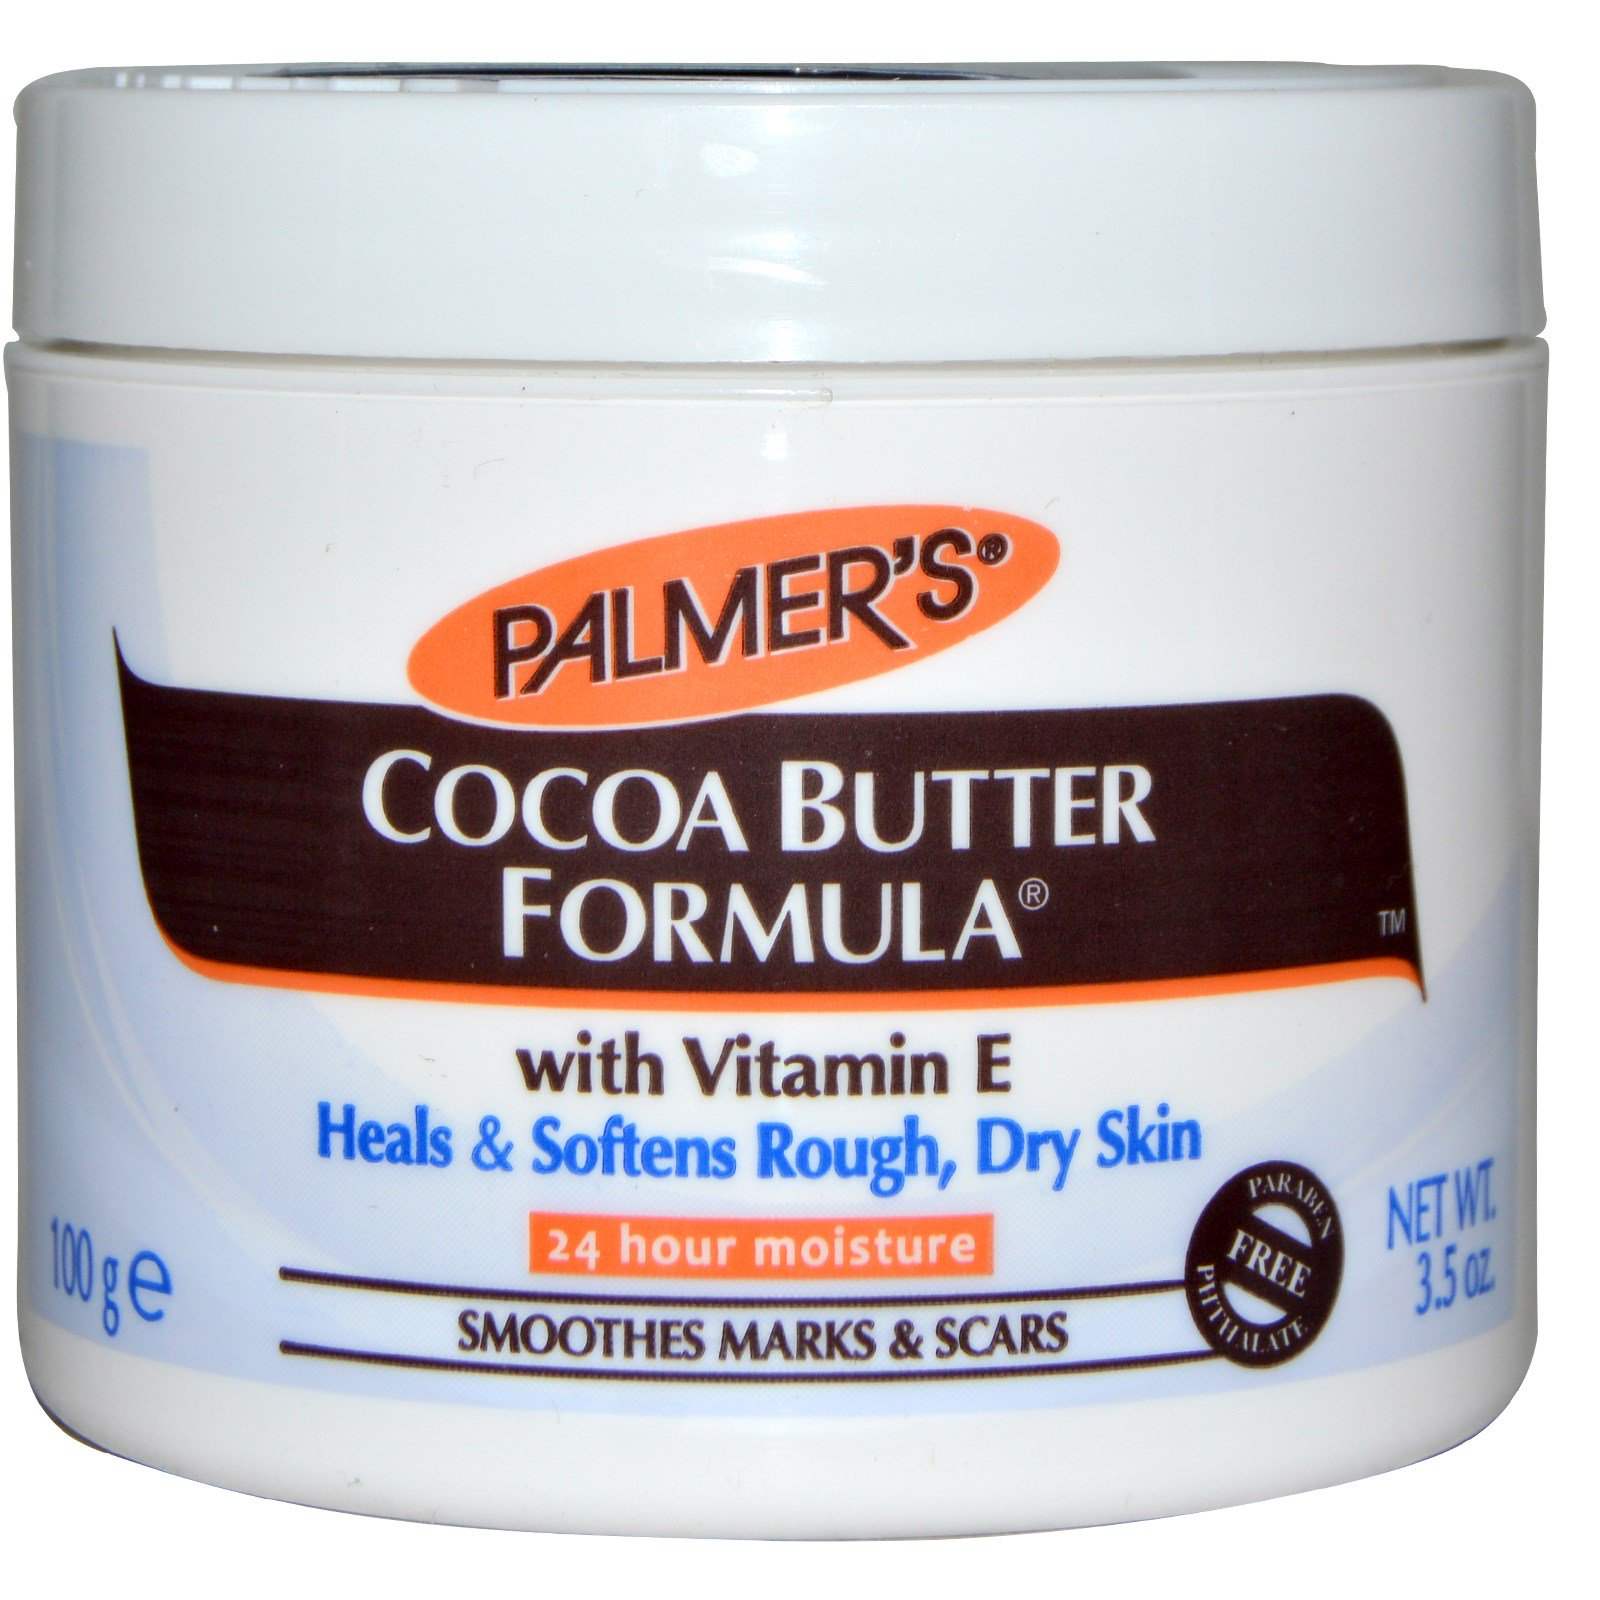 Palmers Cocoa Butter - 7.25 oz Jar